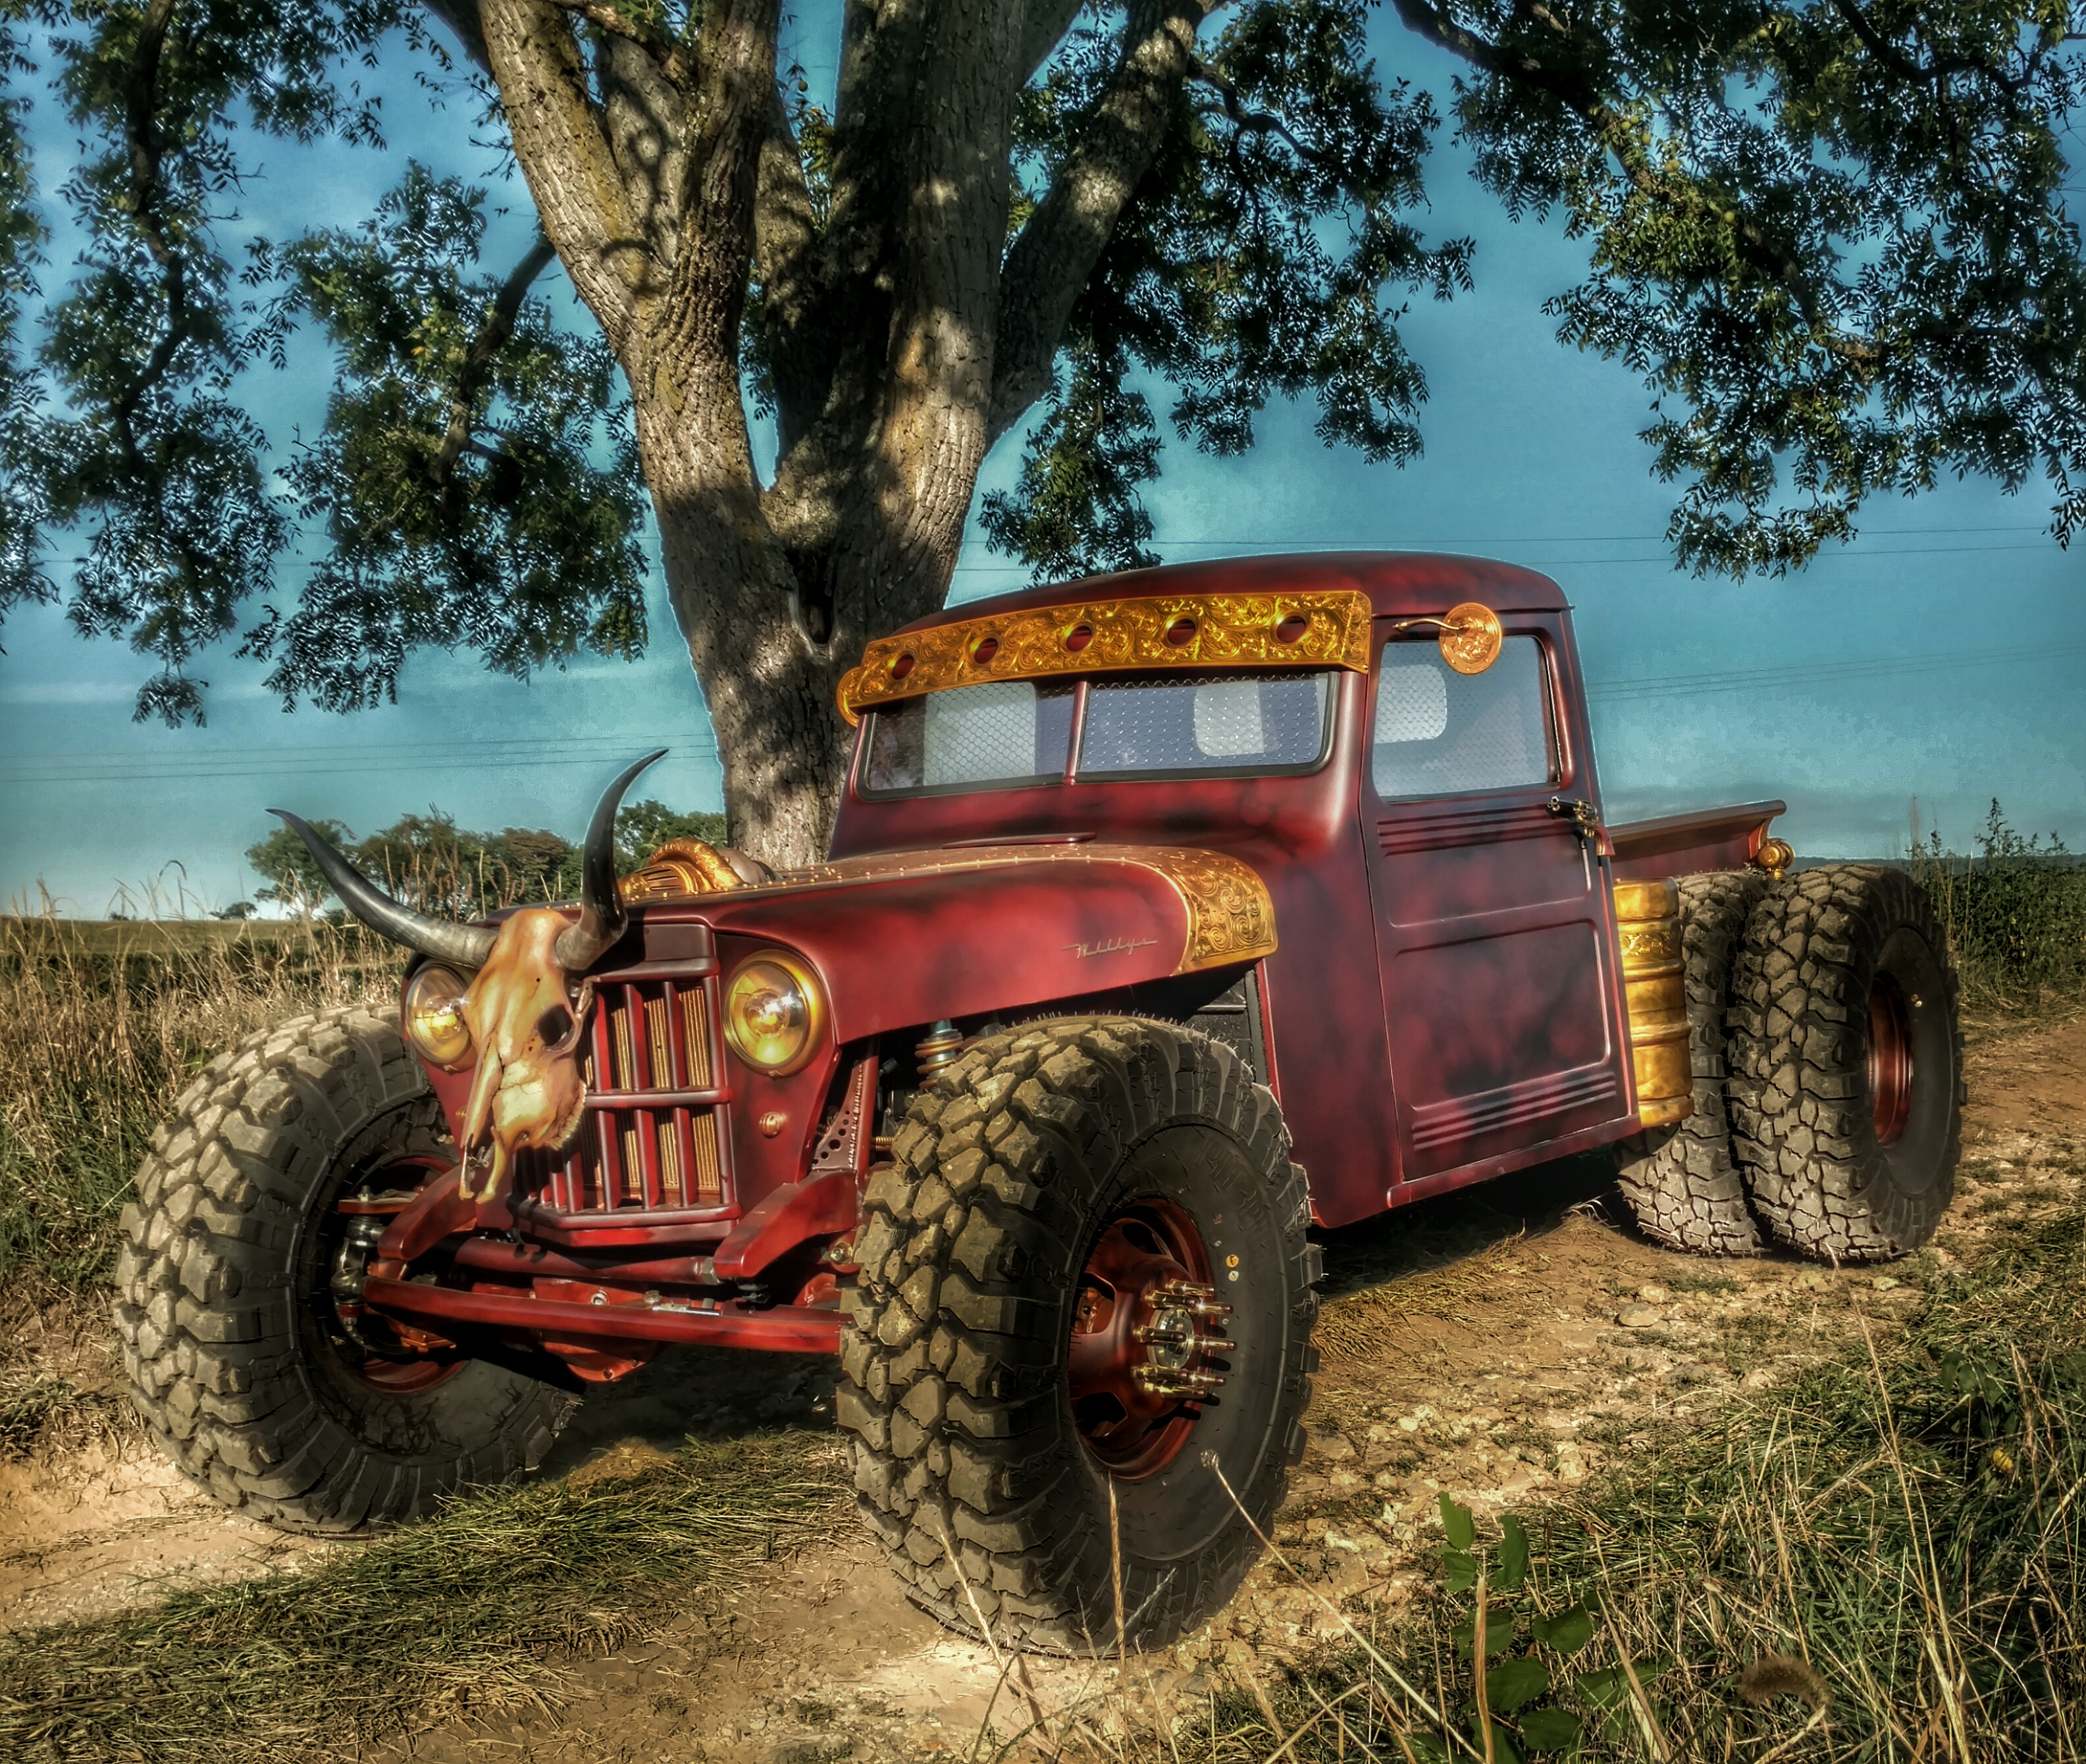 A Willys built by Hauk Designs on the TV Show, Road Hauks.